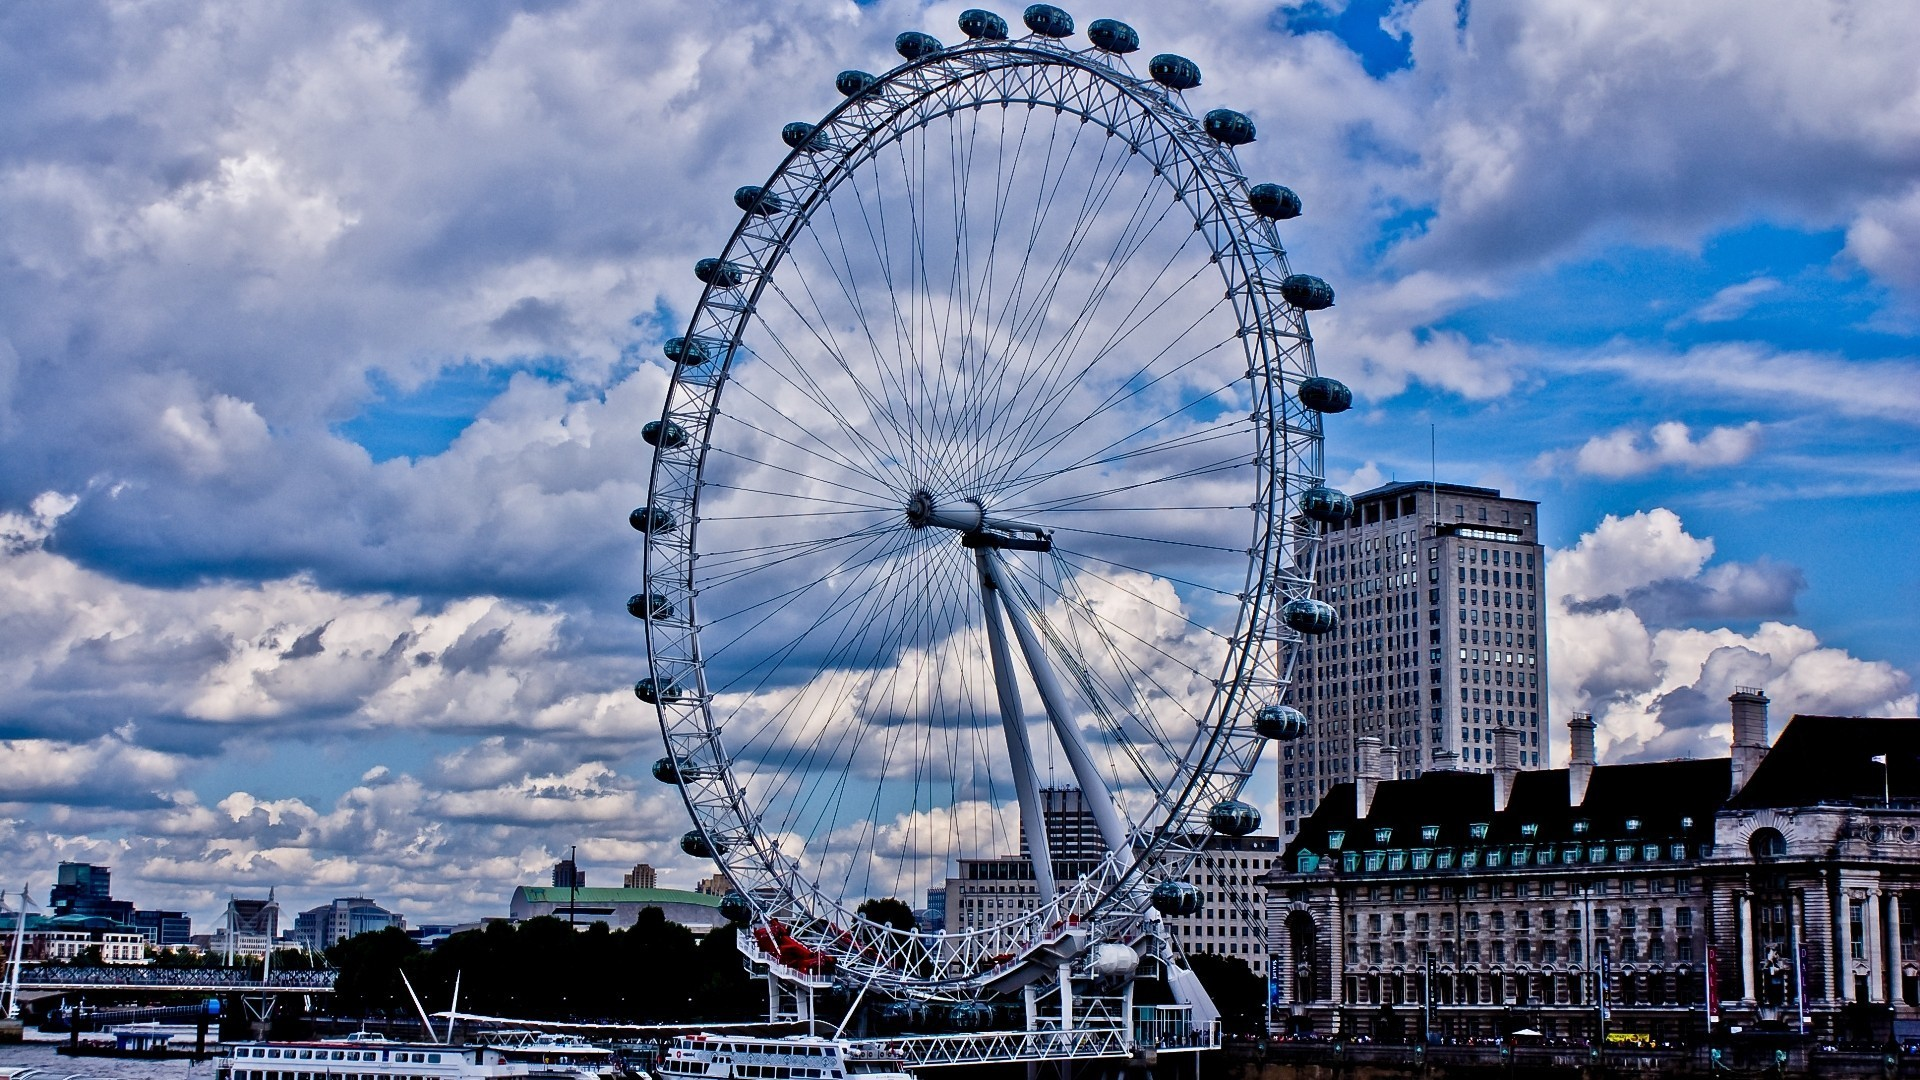 England London Eye United Kingdom Wallpaper   MixHD wallpapers 1920x1080